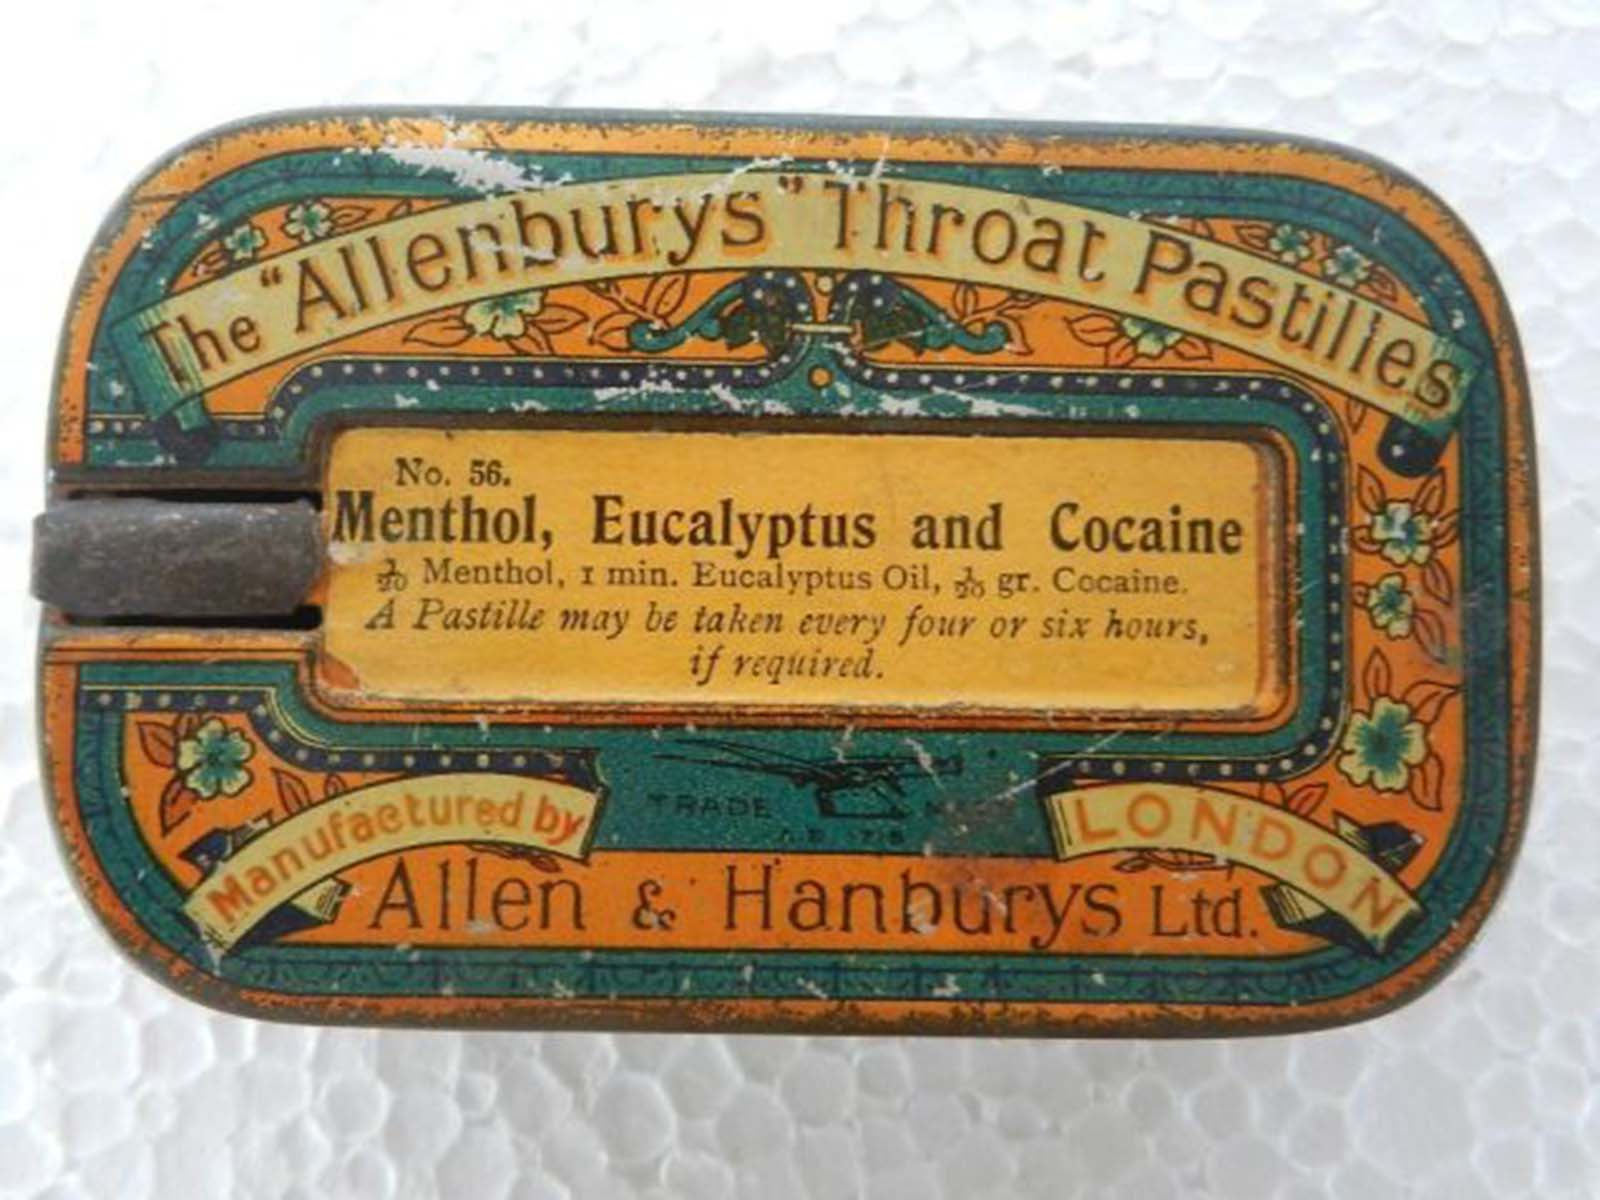 Allenbury's throat pastilles.